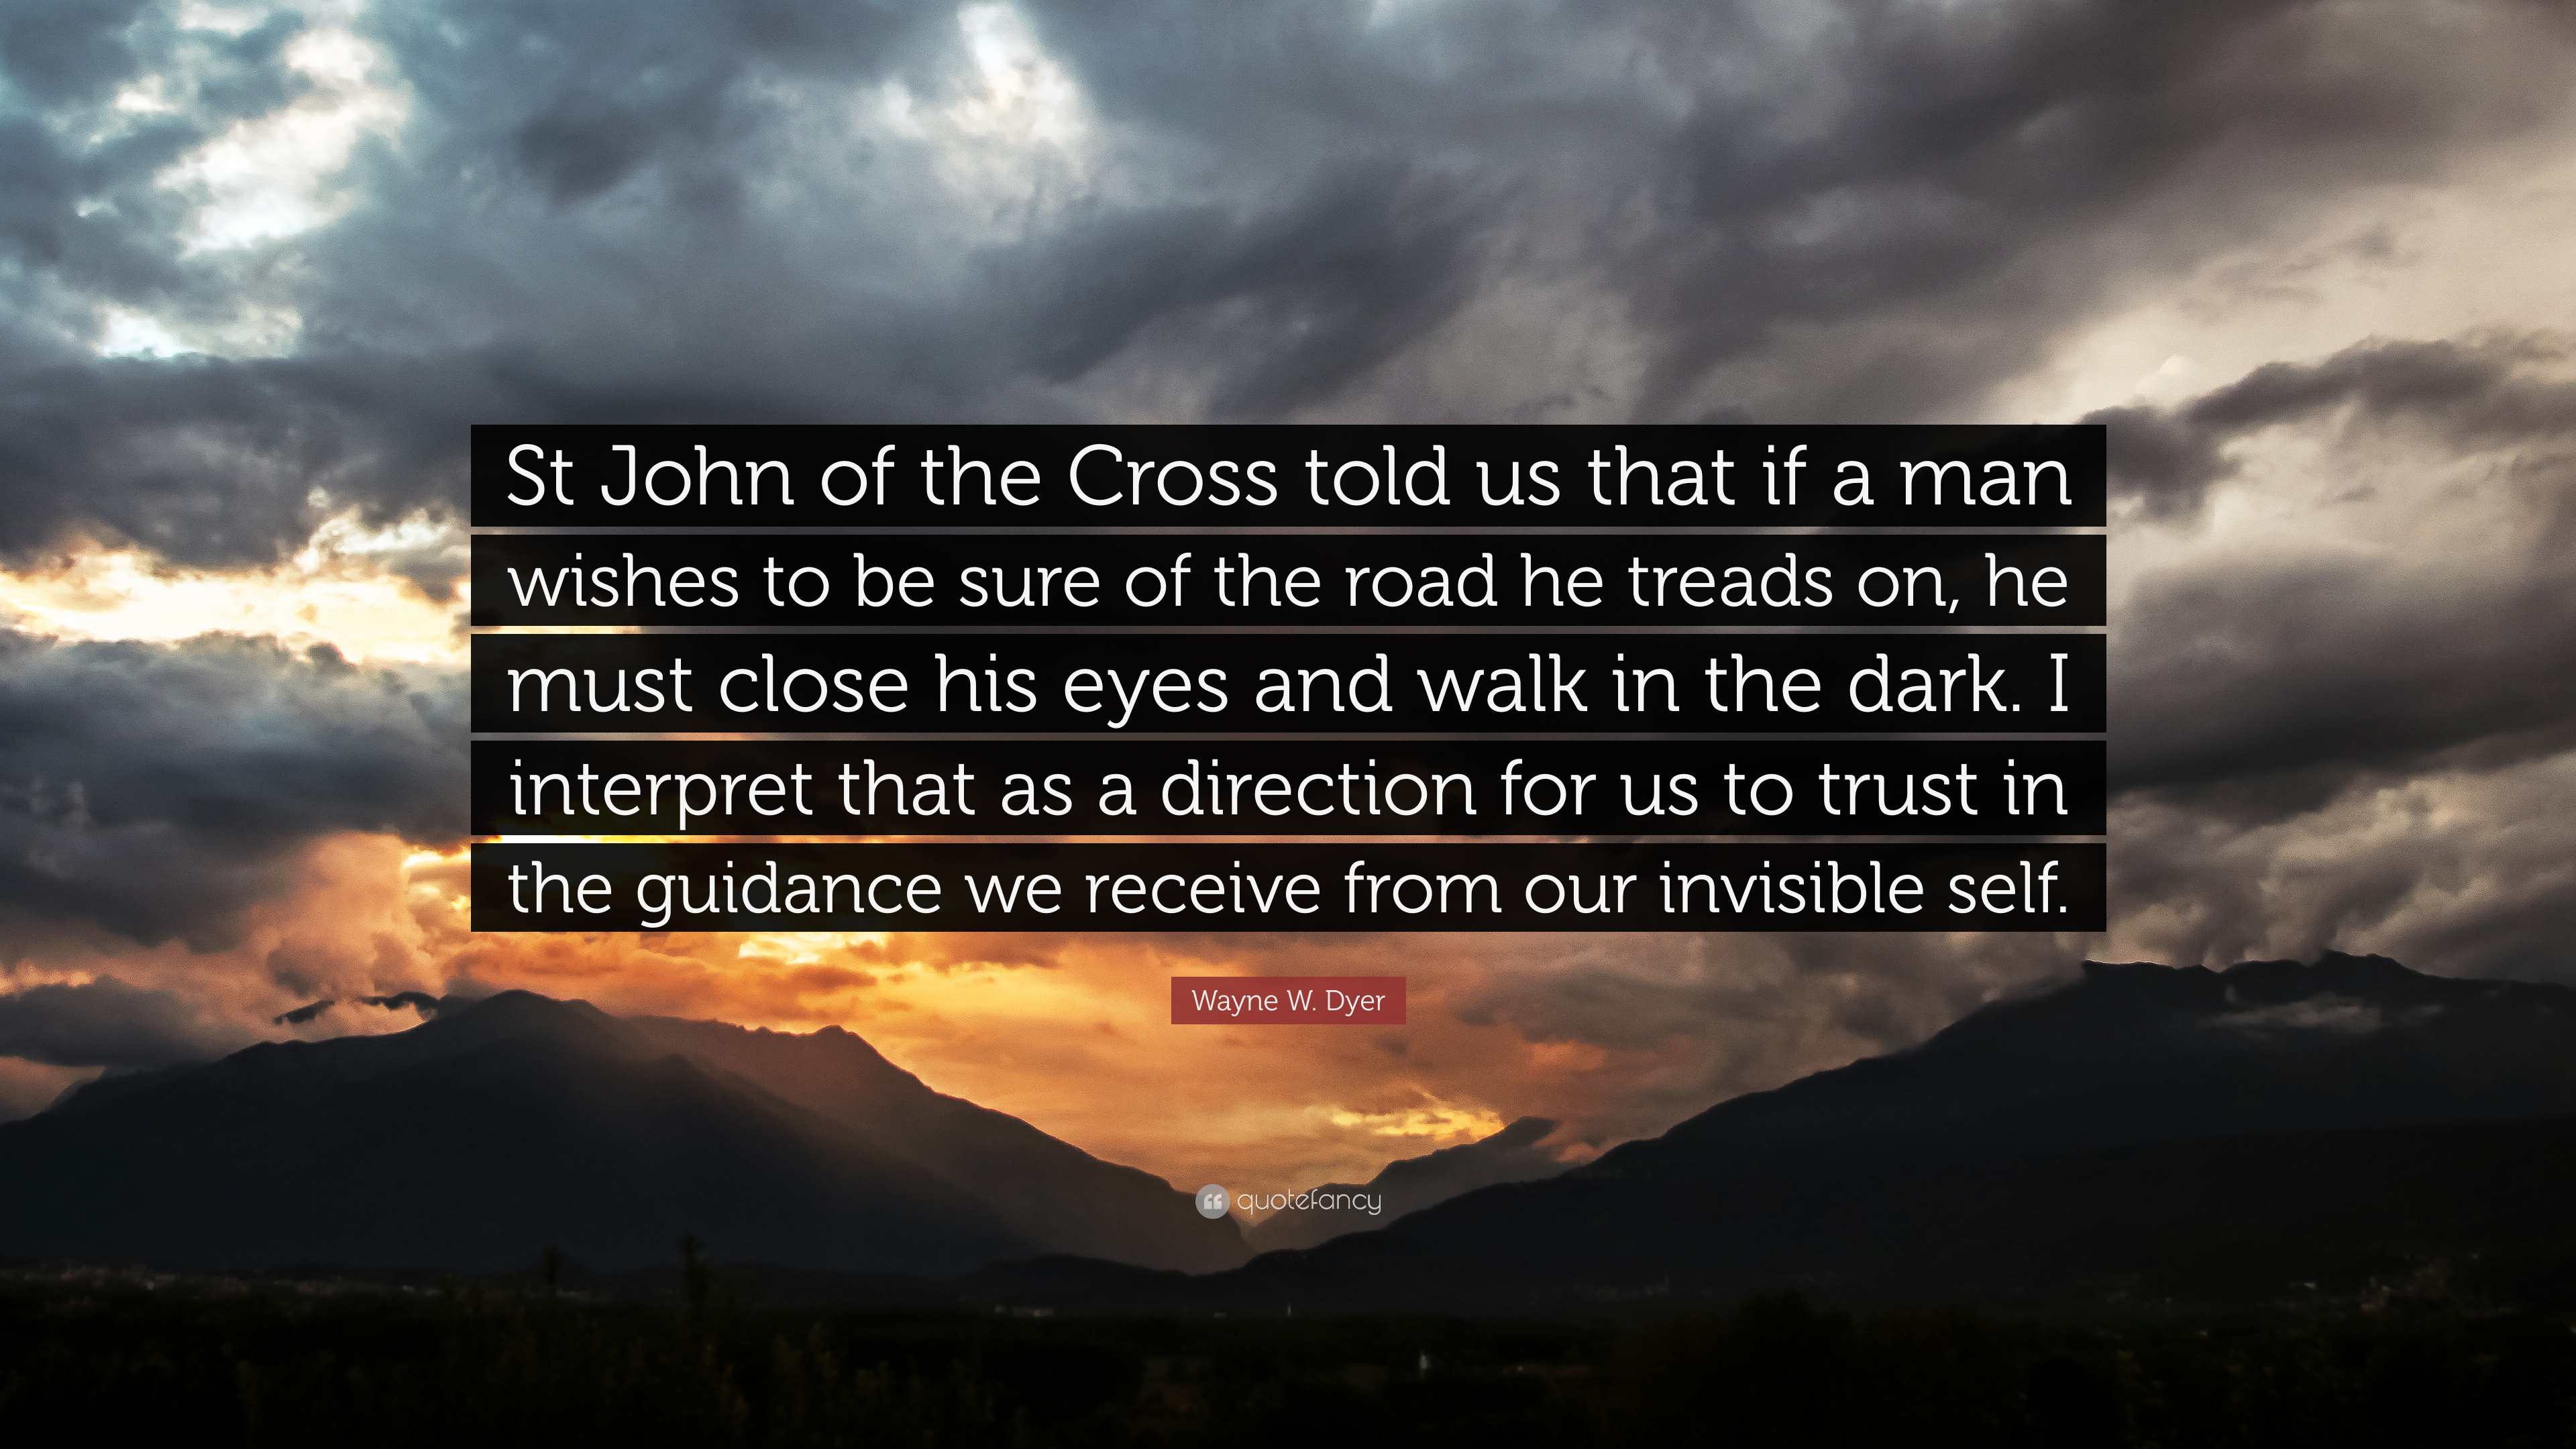 Wayne W Dyer Quote St John Of The Cross Told Us That If A Man